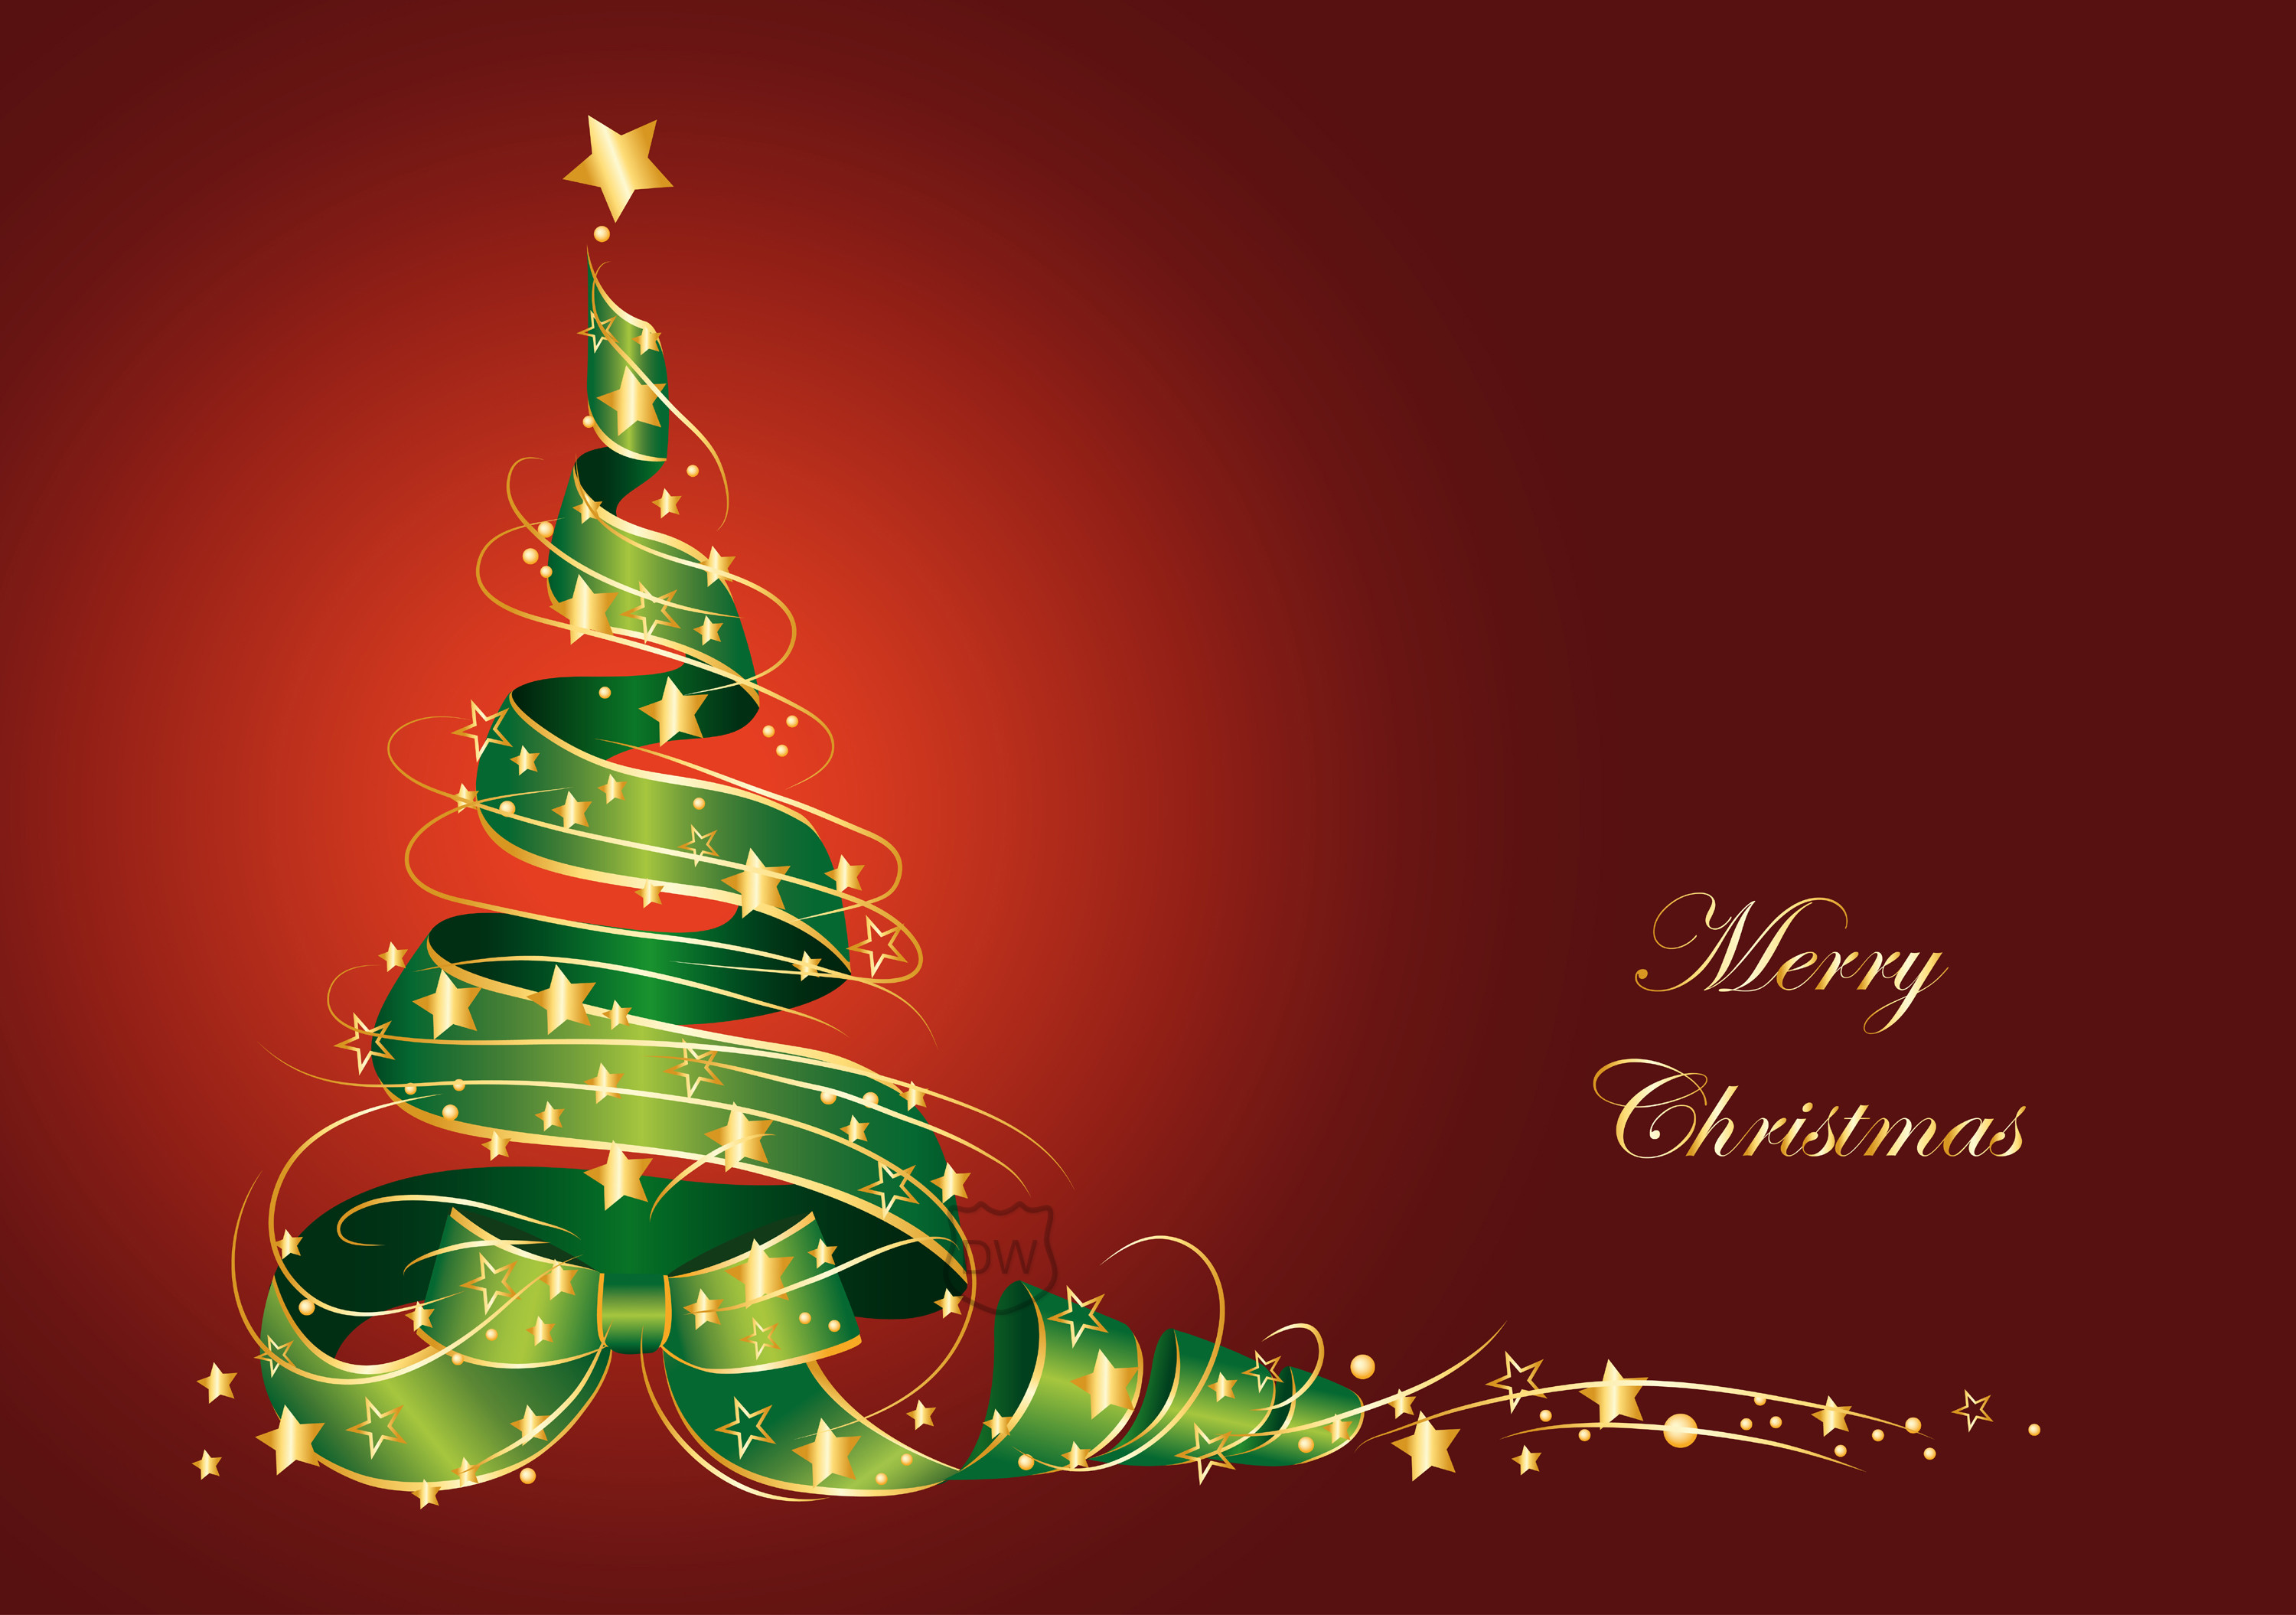 Merry Christmas HD Wallpapers.